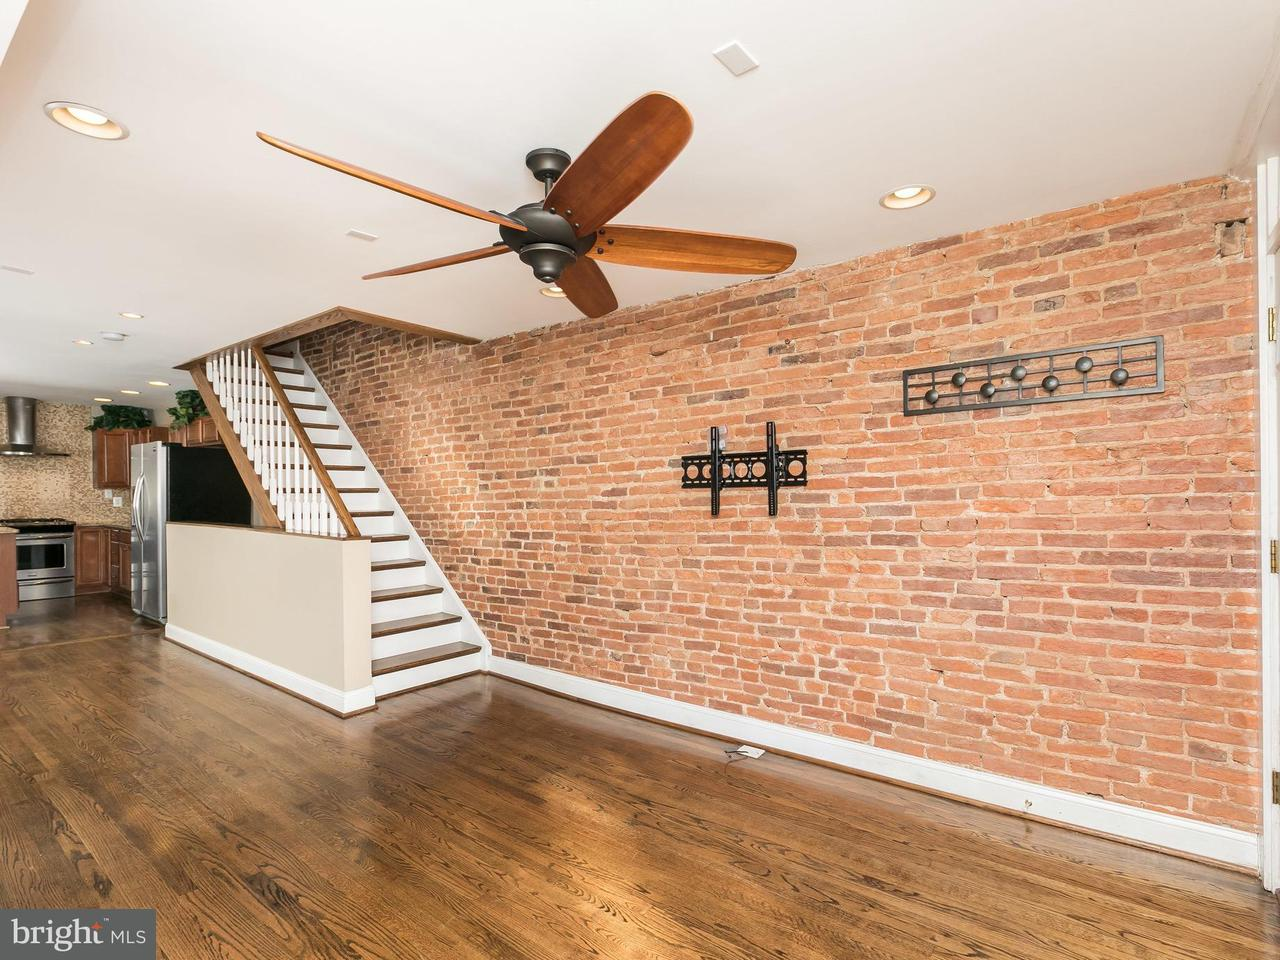 Other Residential for Rent at 1348 Andre St Baltimore, Maryland 21230 United States